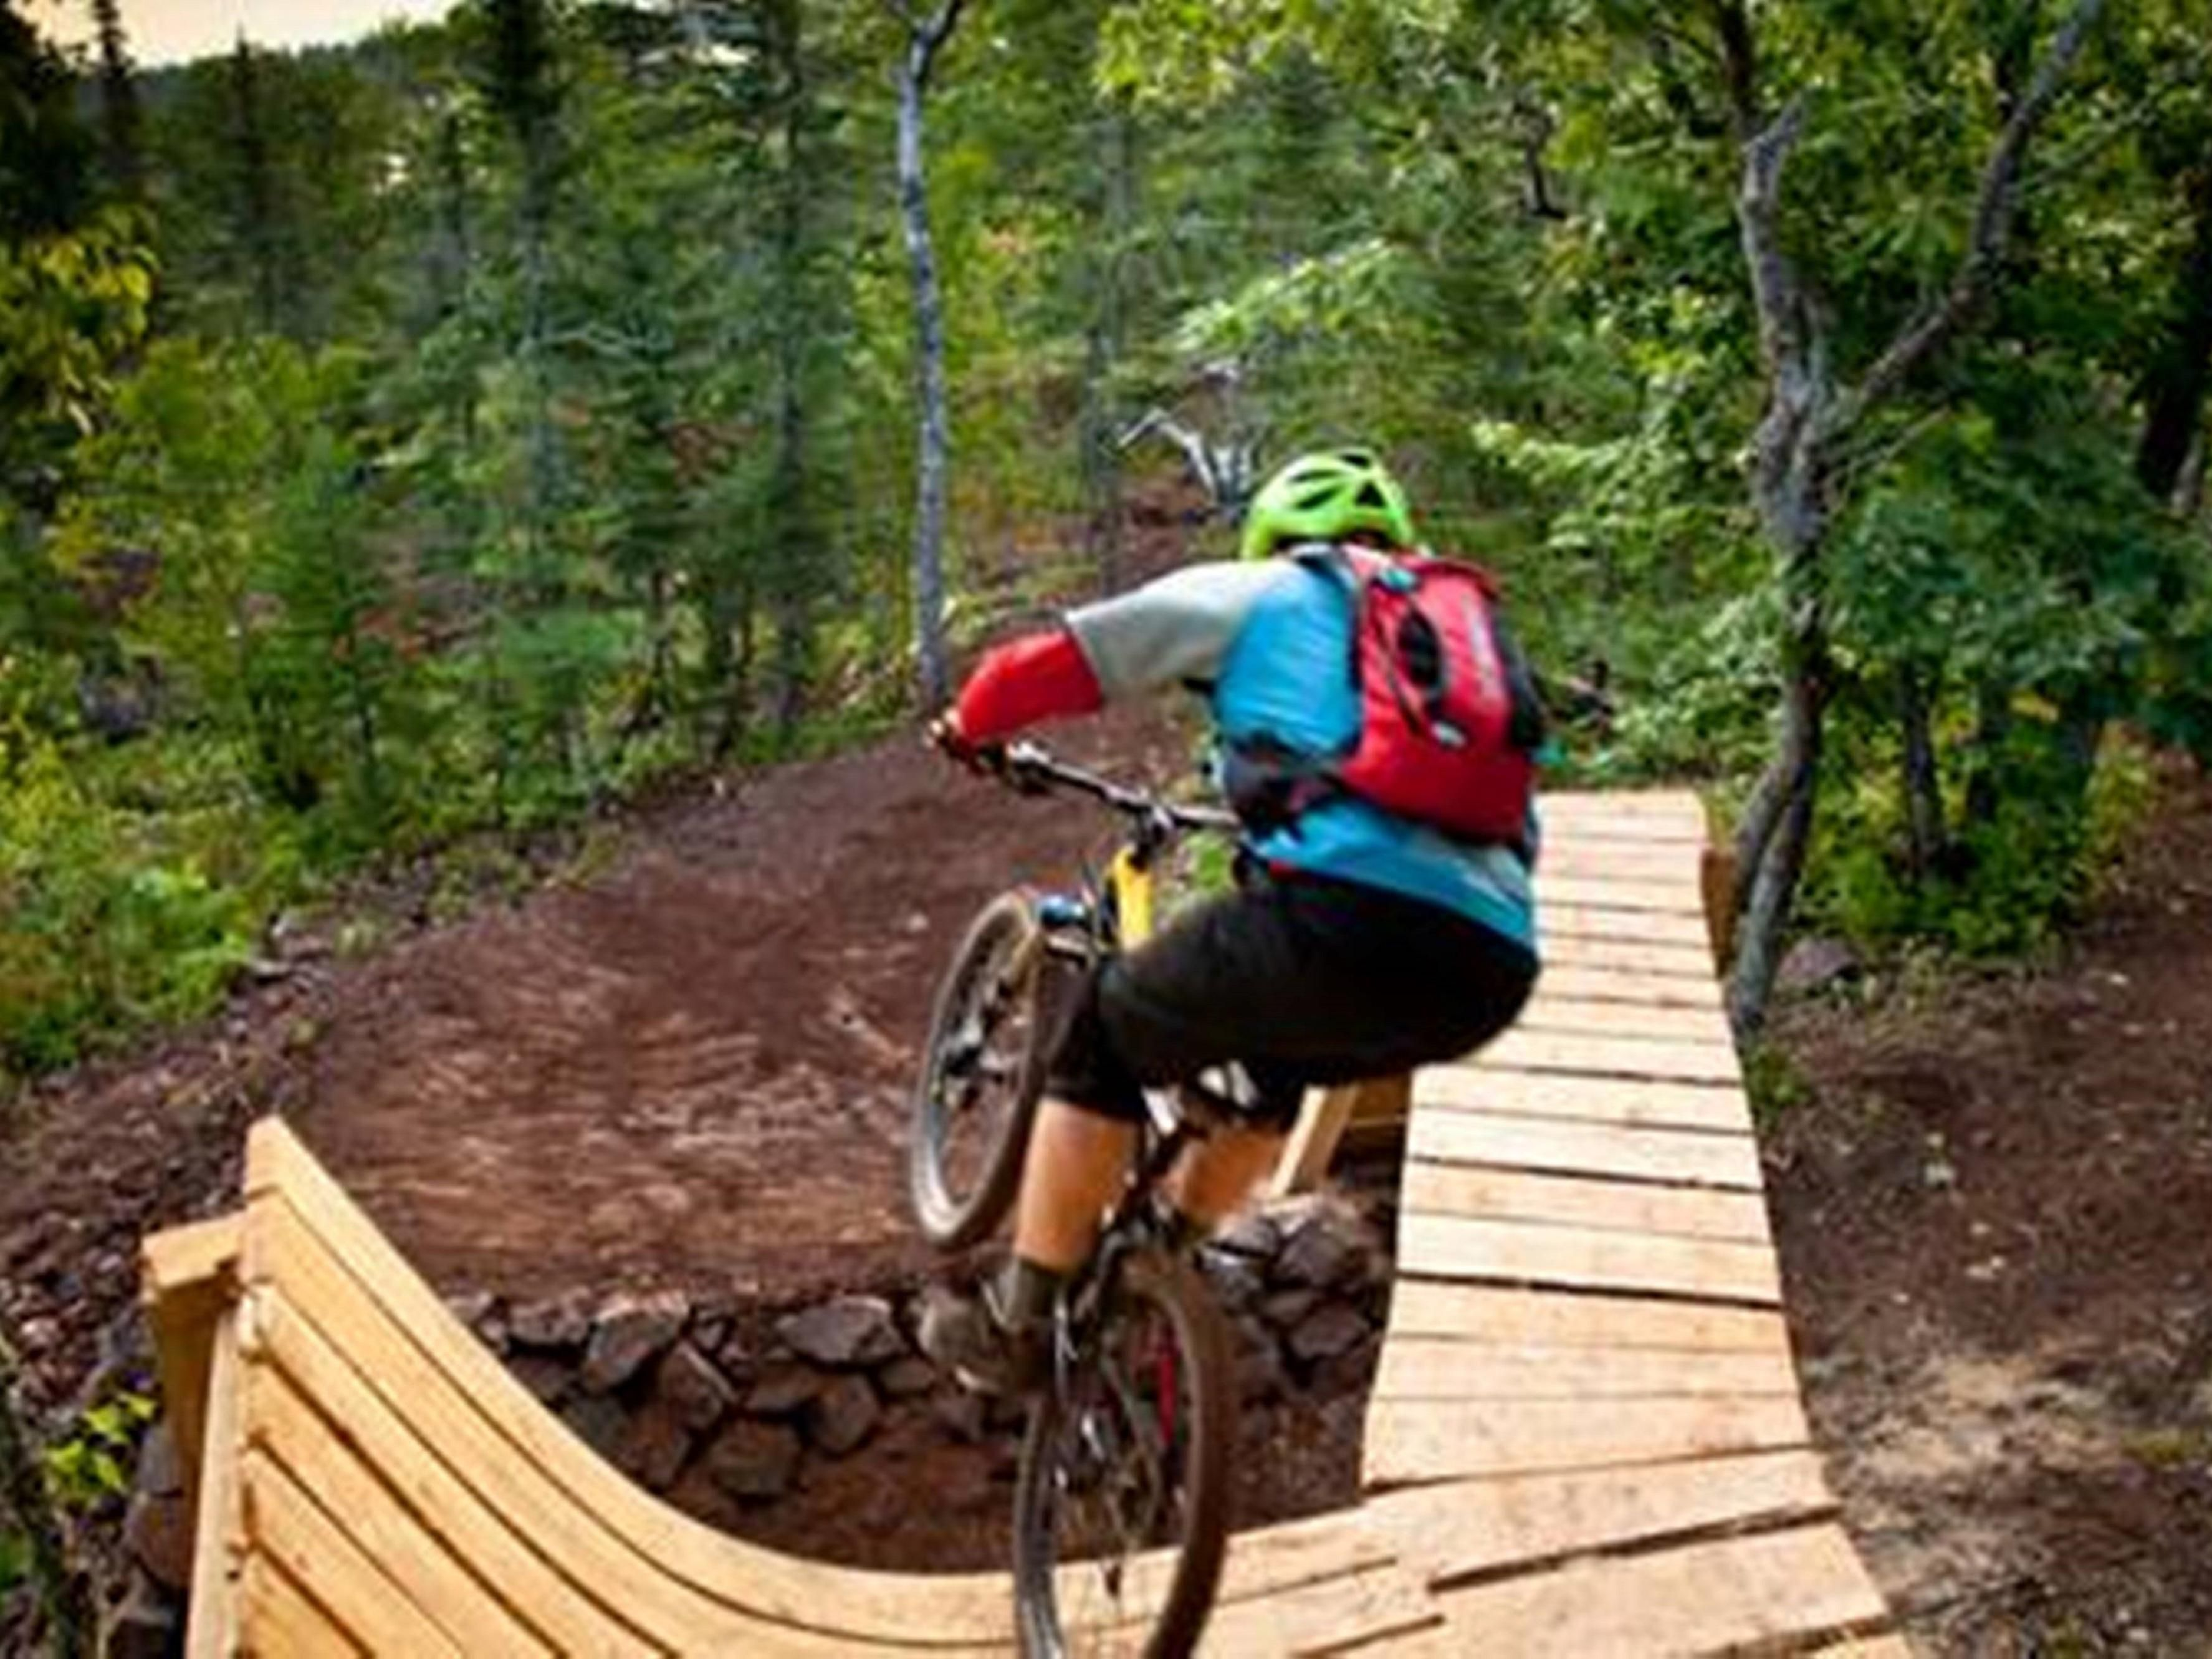 Mountain biking in Copper Harbor, 45 miles north of Houghton.